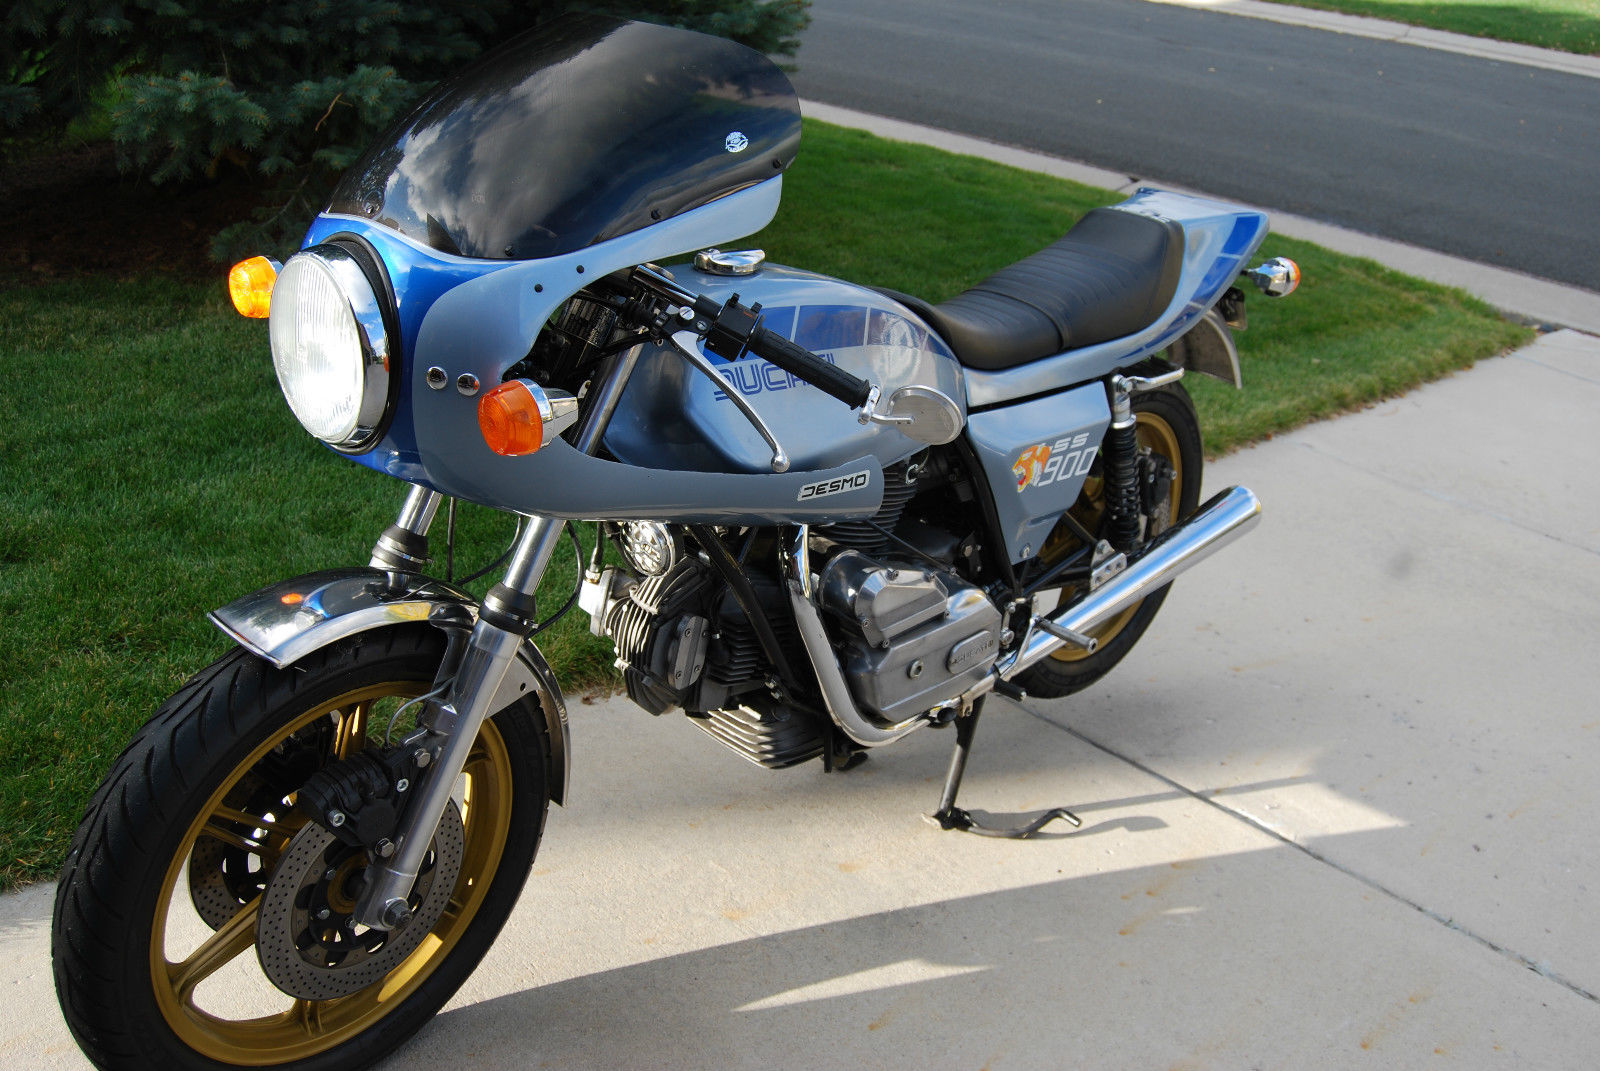 Ducati Darmah - 1980 - Left Side View, Tank, Fairing, Side Panel and Seat.